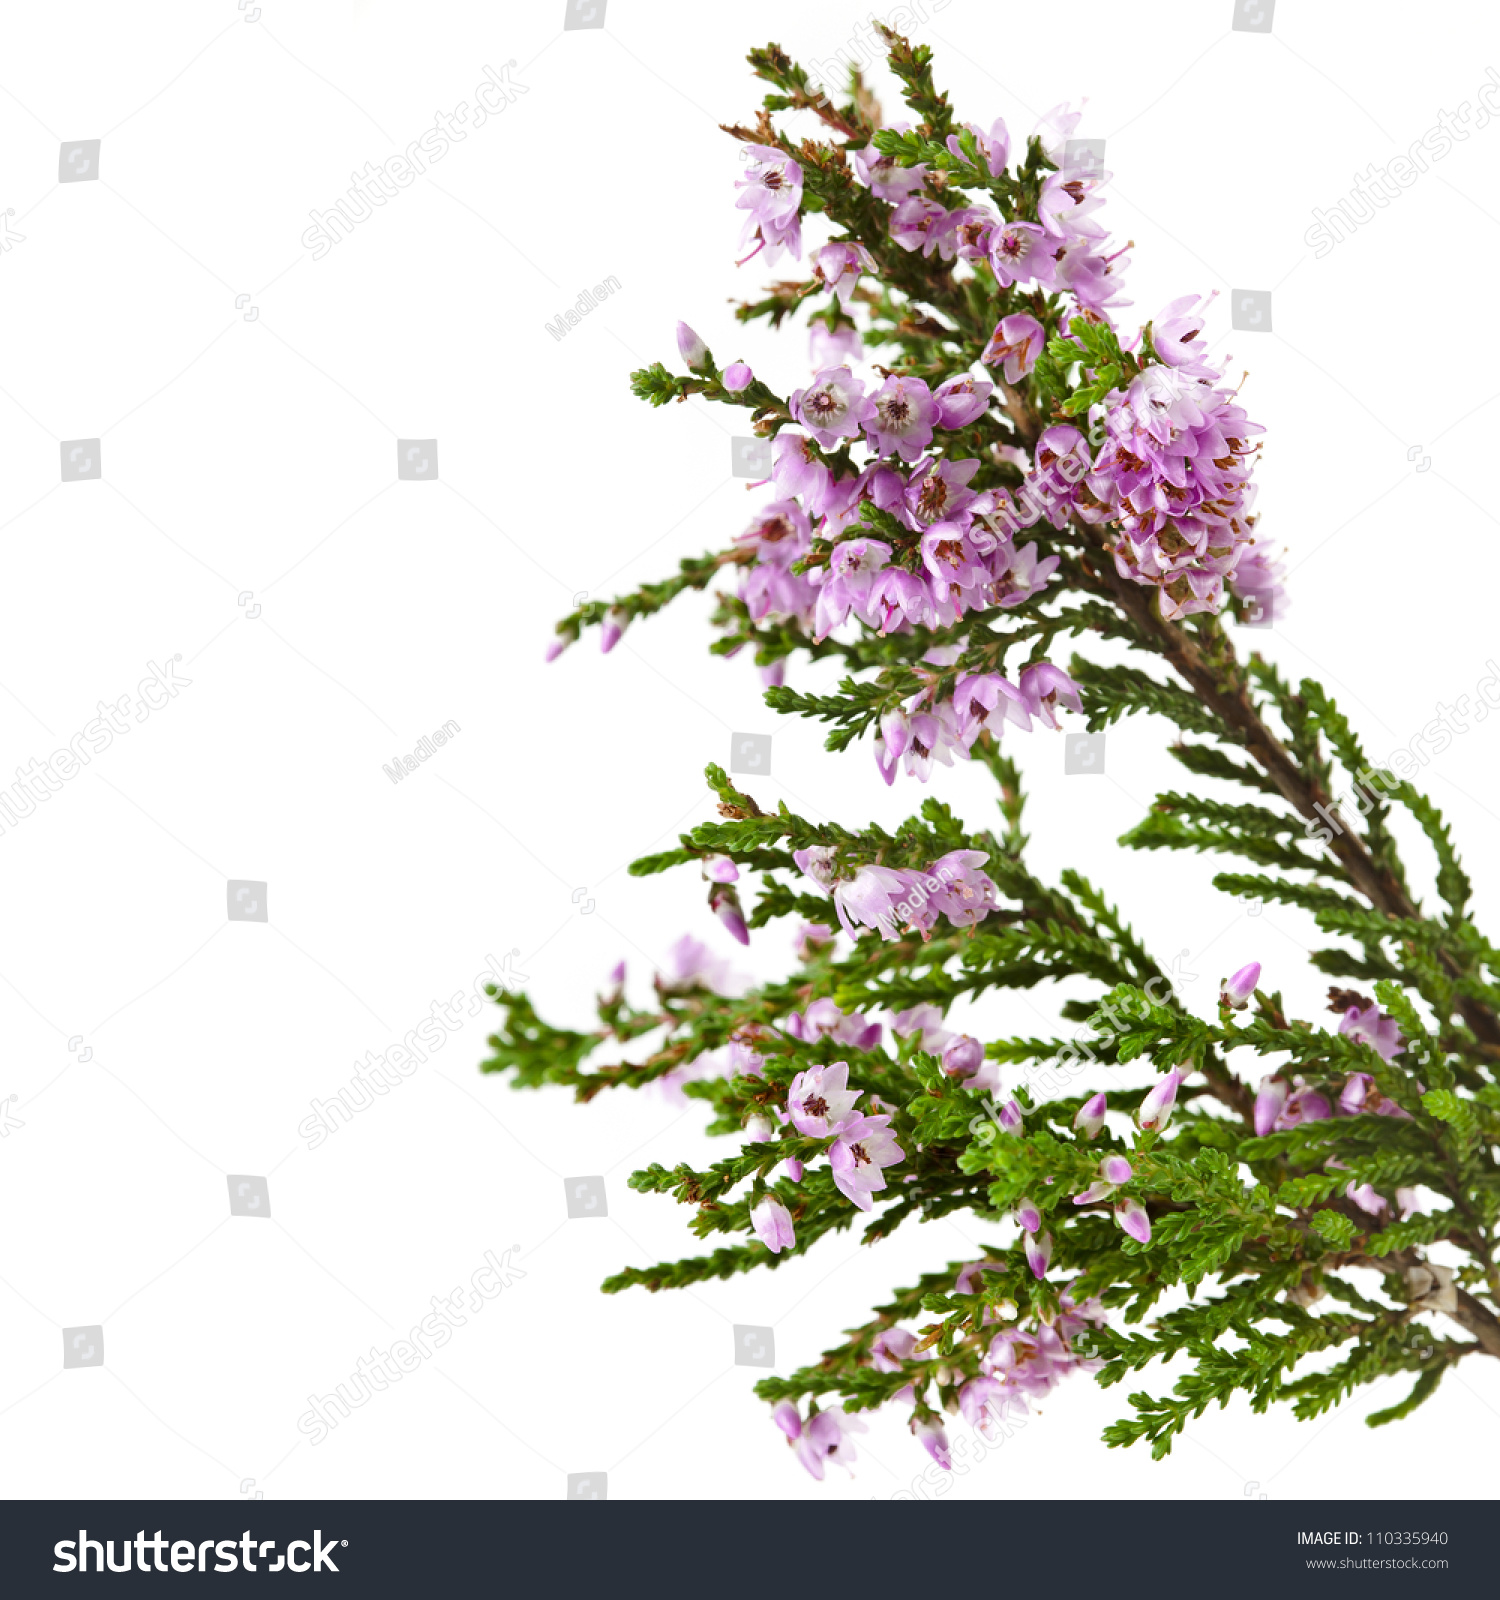 Heather With Purple Flowers Isolated On White Background Ez Canvas